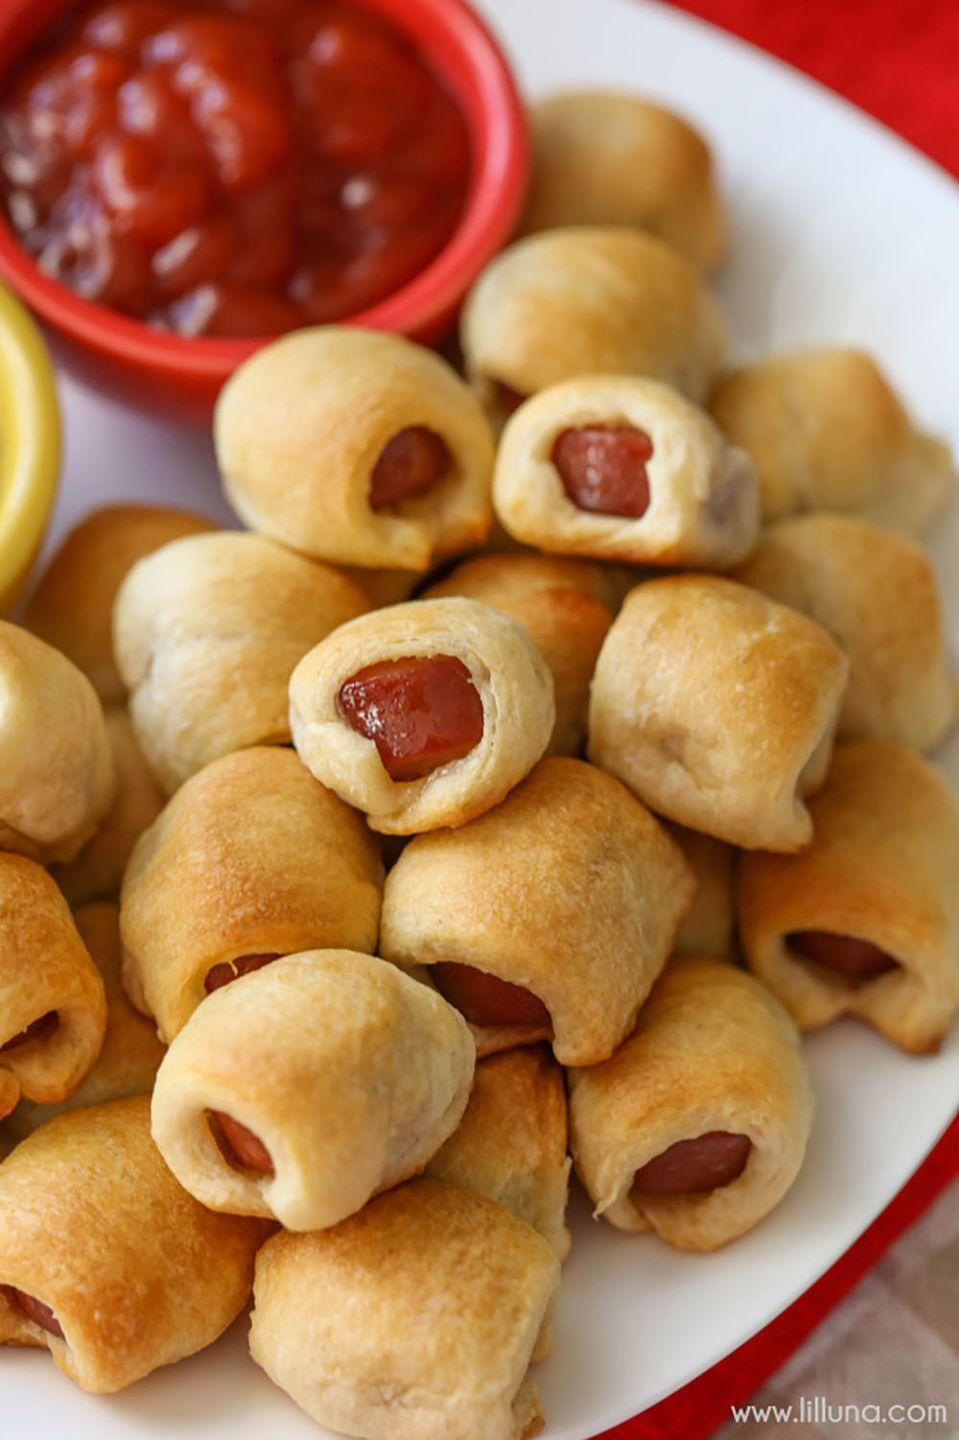 """<p>Hot dogs become 10 times more fun when they're bite-size. Plus, they're perfect for dipping in marinara!</p><p><strong>Get the recipe at <a href=""""https://lilluna.com/corn-dog-nuggets/"""" rel=""""nofollow noopener"""" target=""""_blank"""" data-ylk=""""slk:Lil' Luna"""" class=""""link rapid-noclick-resp"""">Lil' Luna</a>. </strong><br></p>"""